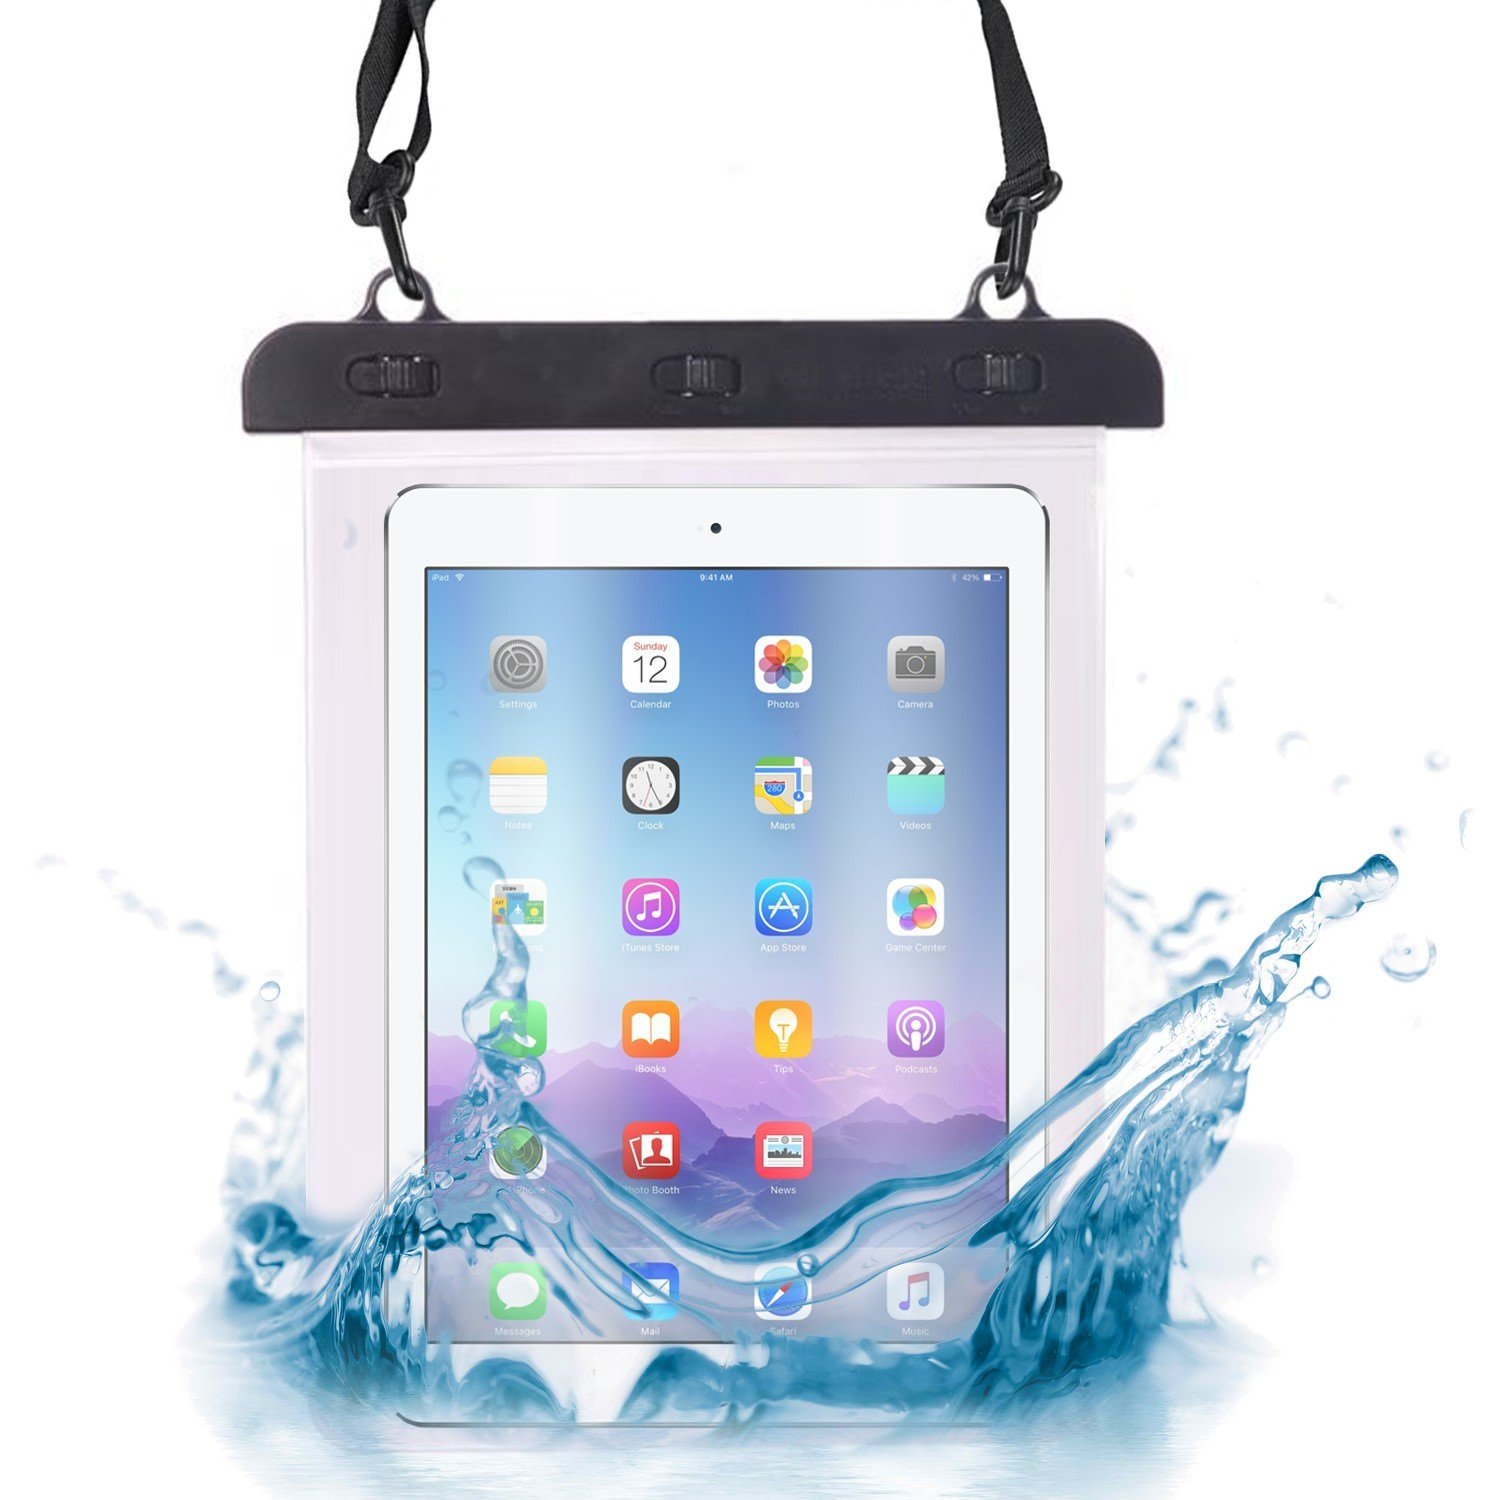 Passport Universal 7 inch // 8 inch Transparent Dry Bag Designed for Waterproof Protection of Tablet Black I-Sonite Money Underwater Cover Suitable for Apple iPad mini 2 retina